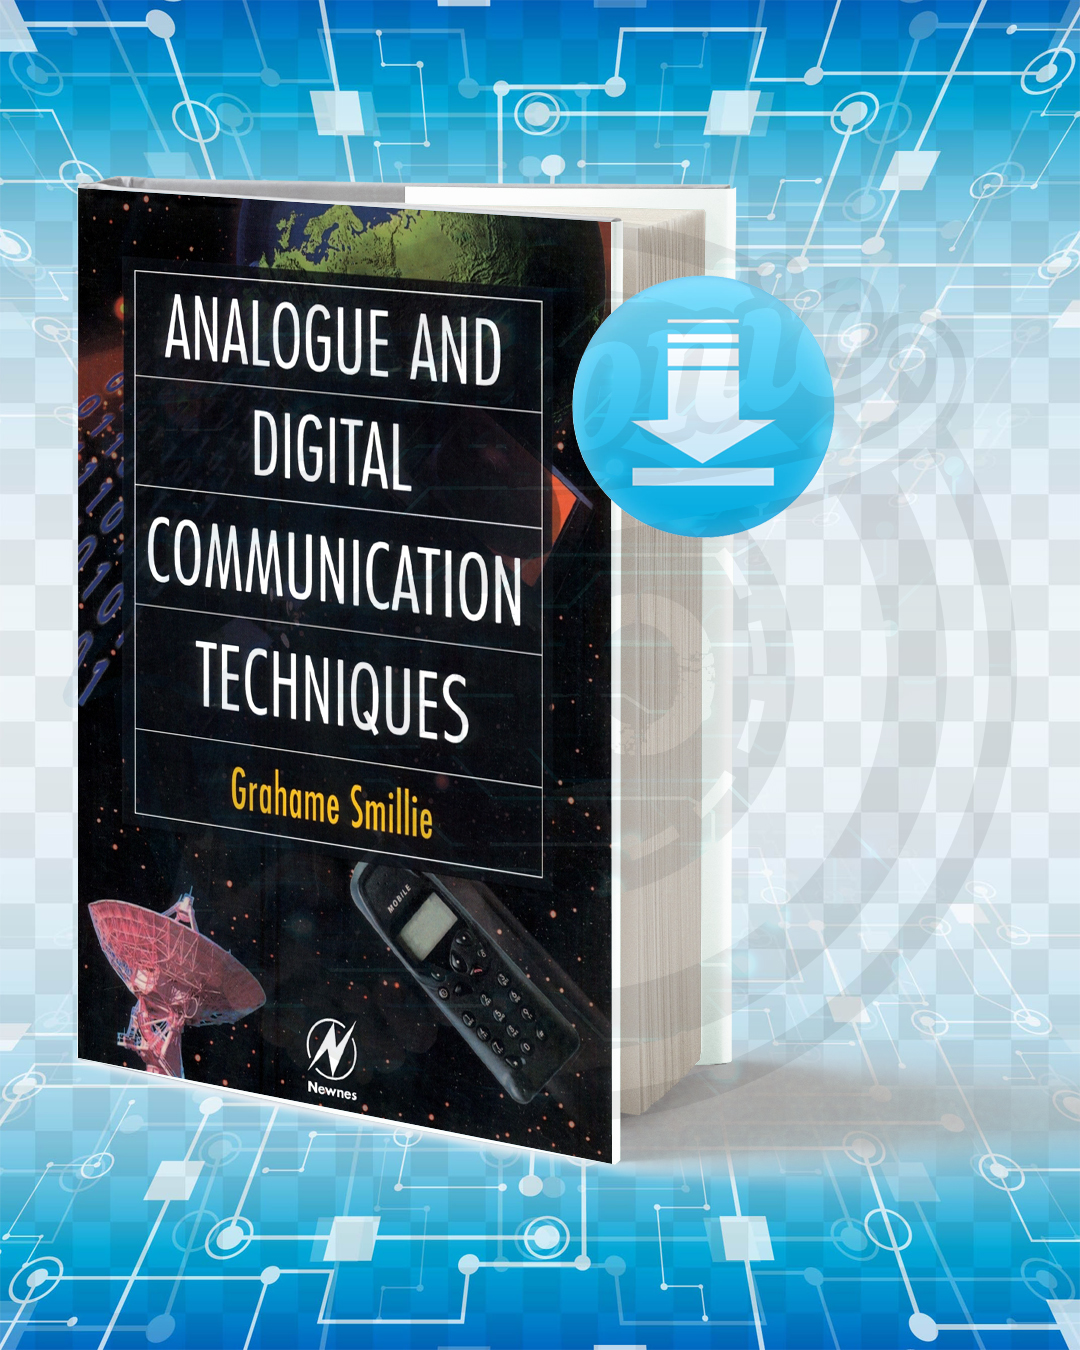 Free Book Analogue and Digital Communication Techniques pdf.